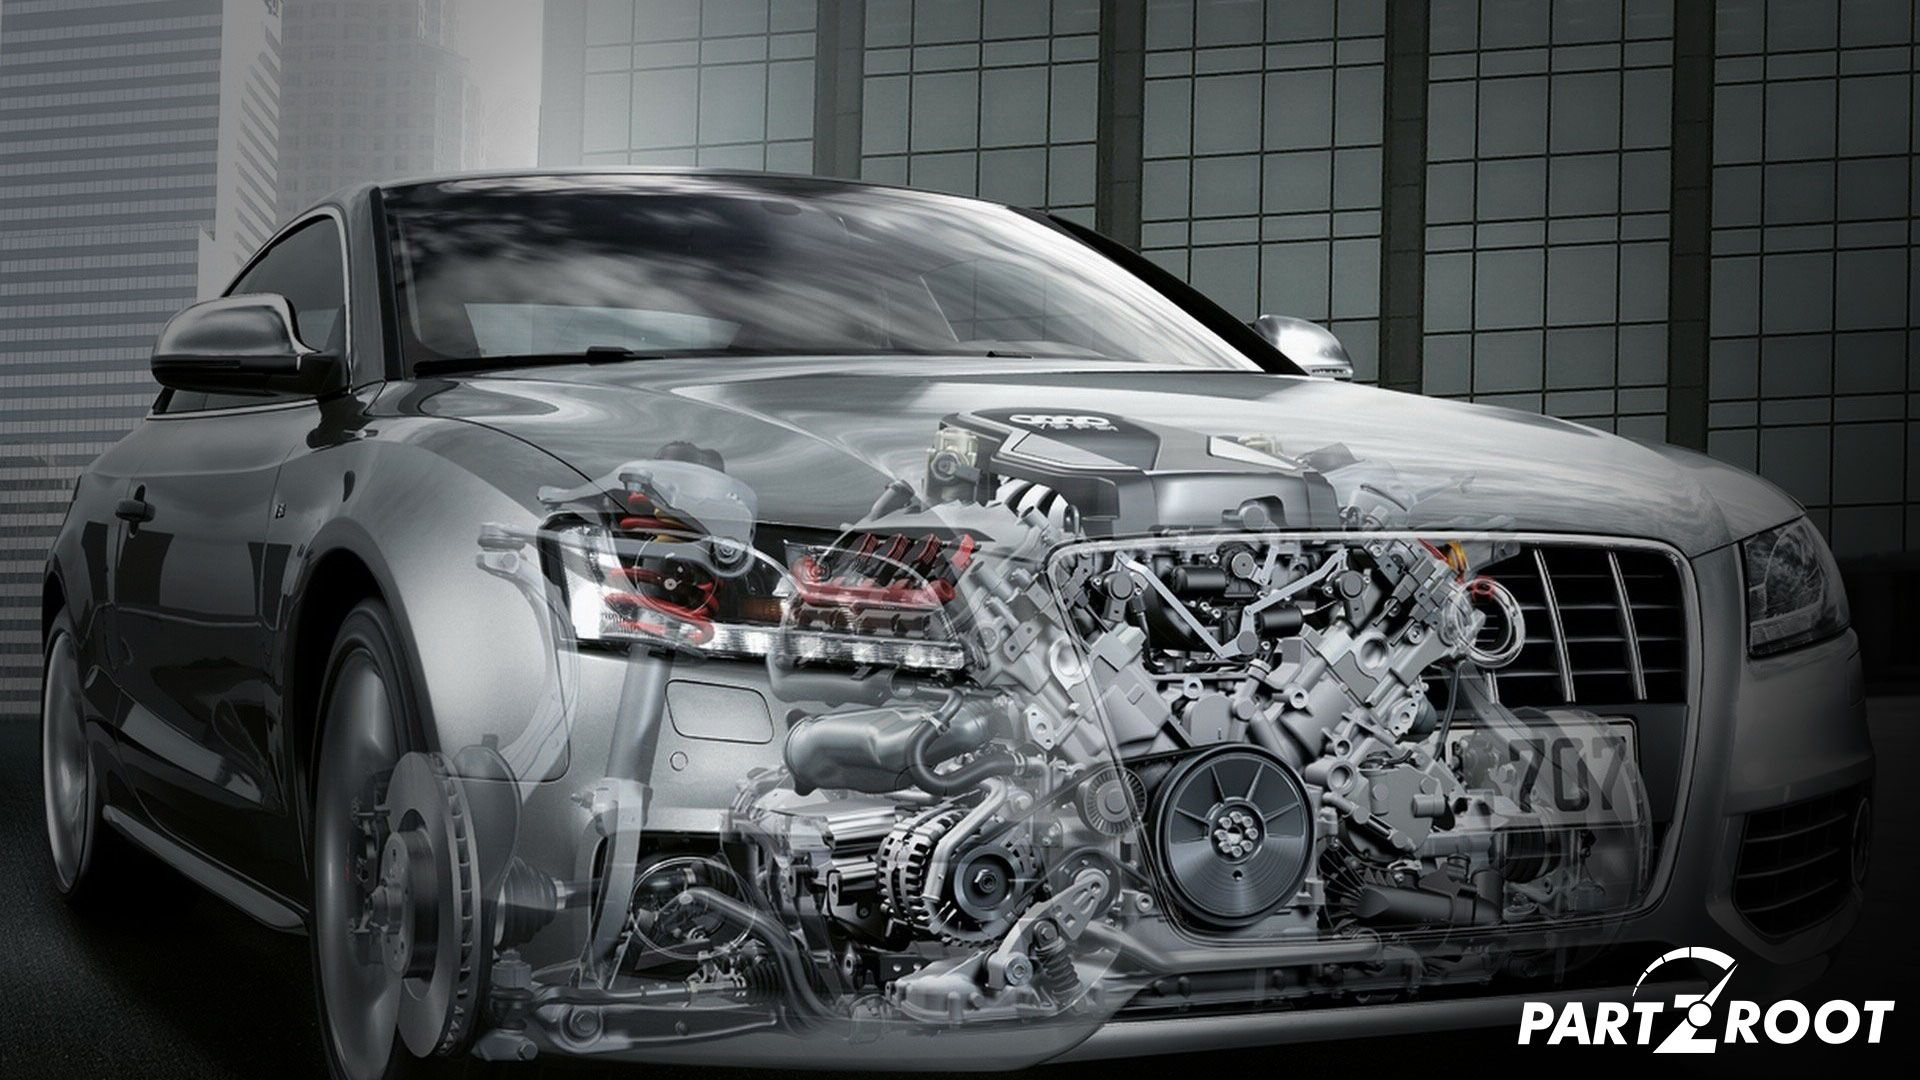 Partzroot Is The Root For All Your Oem Quality Aftermarket Auto Parts Car Engine Audi Car